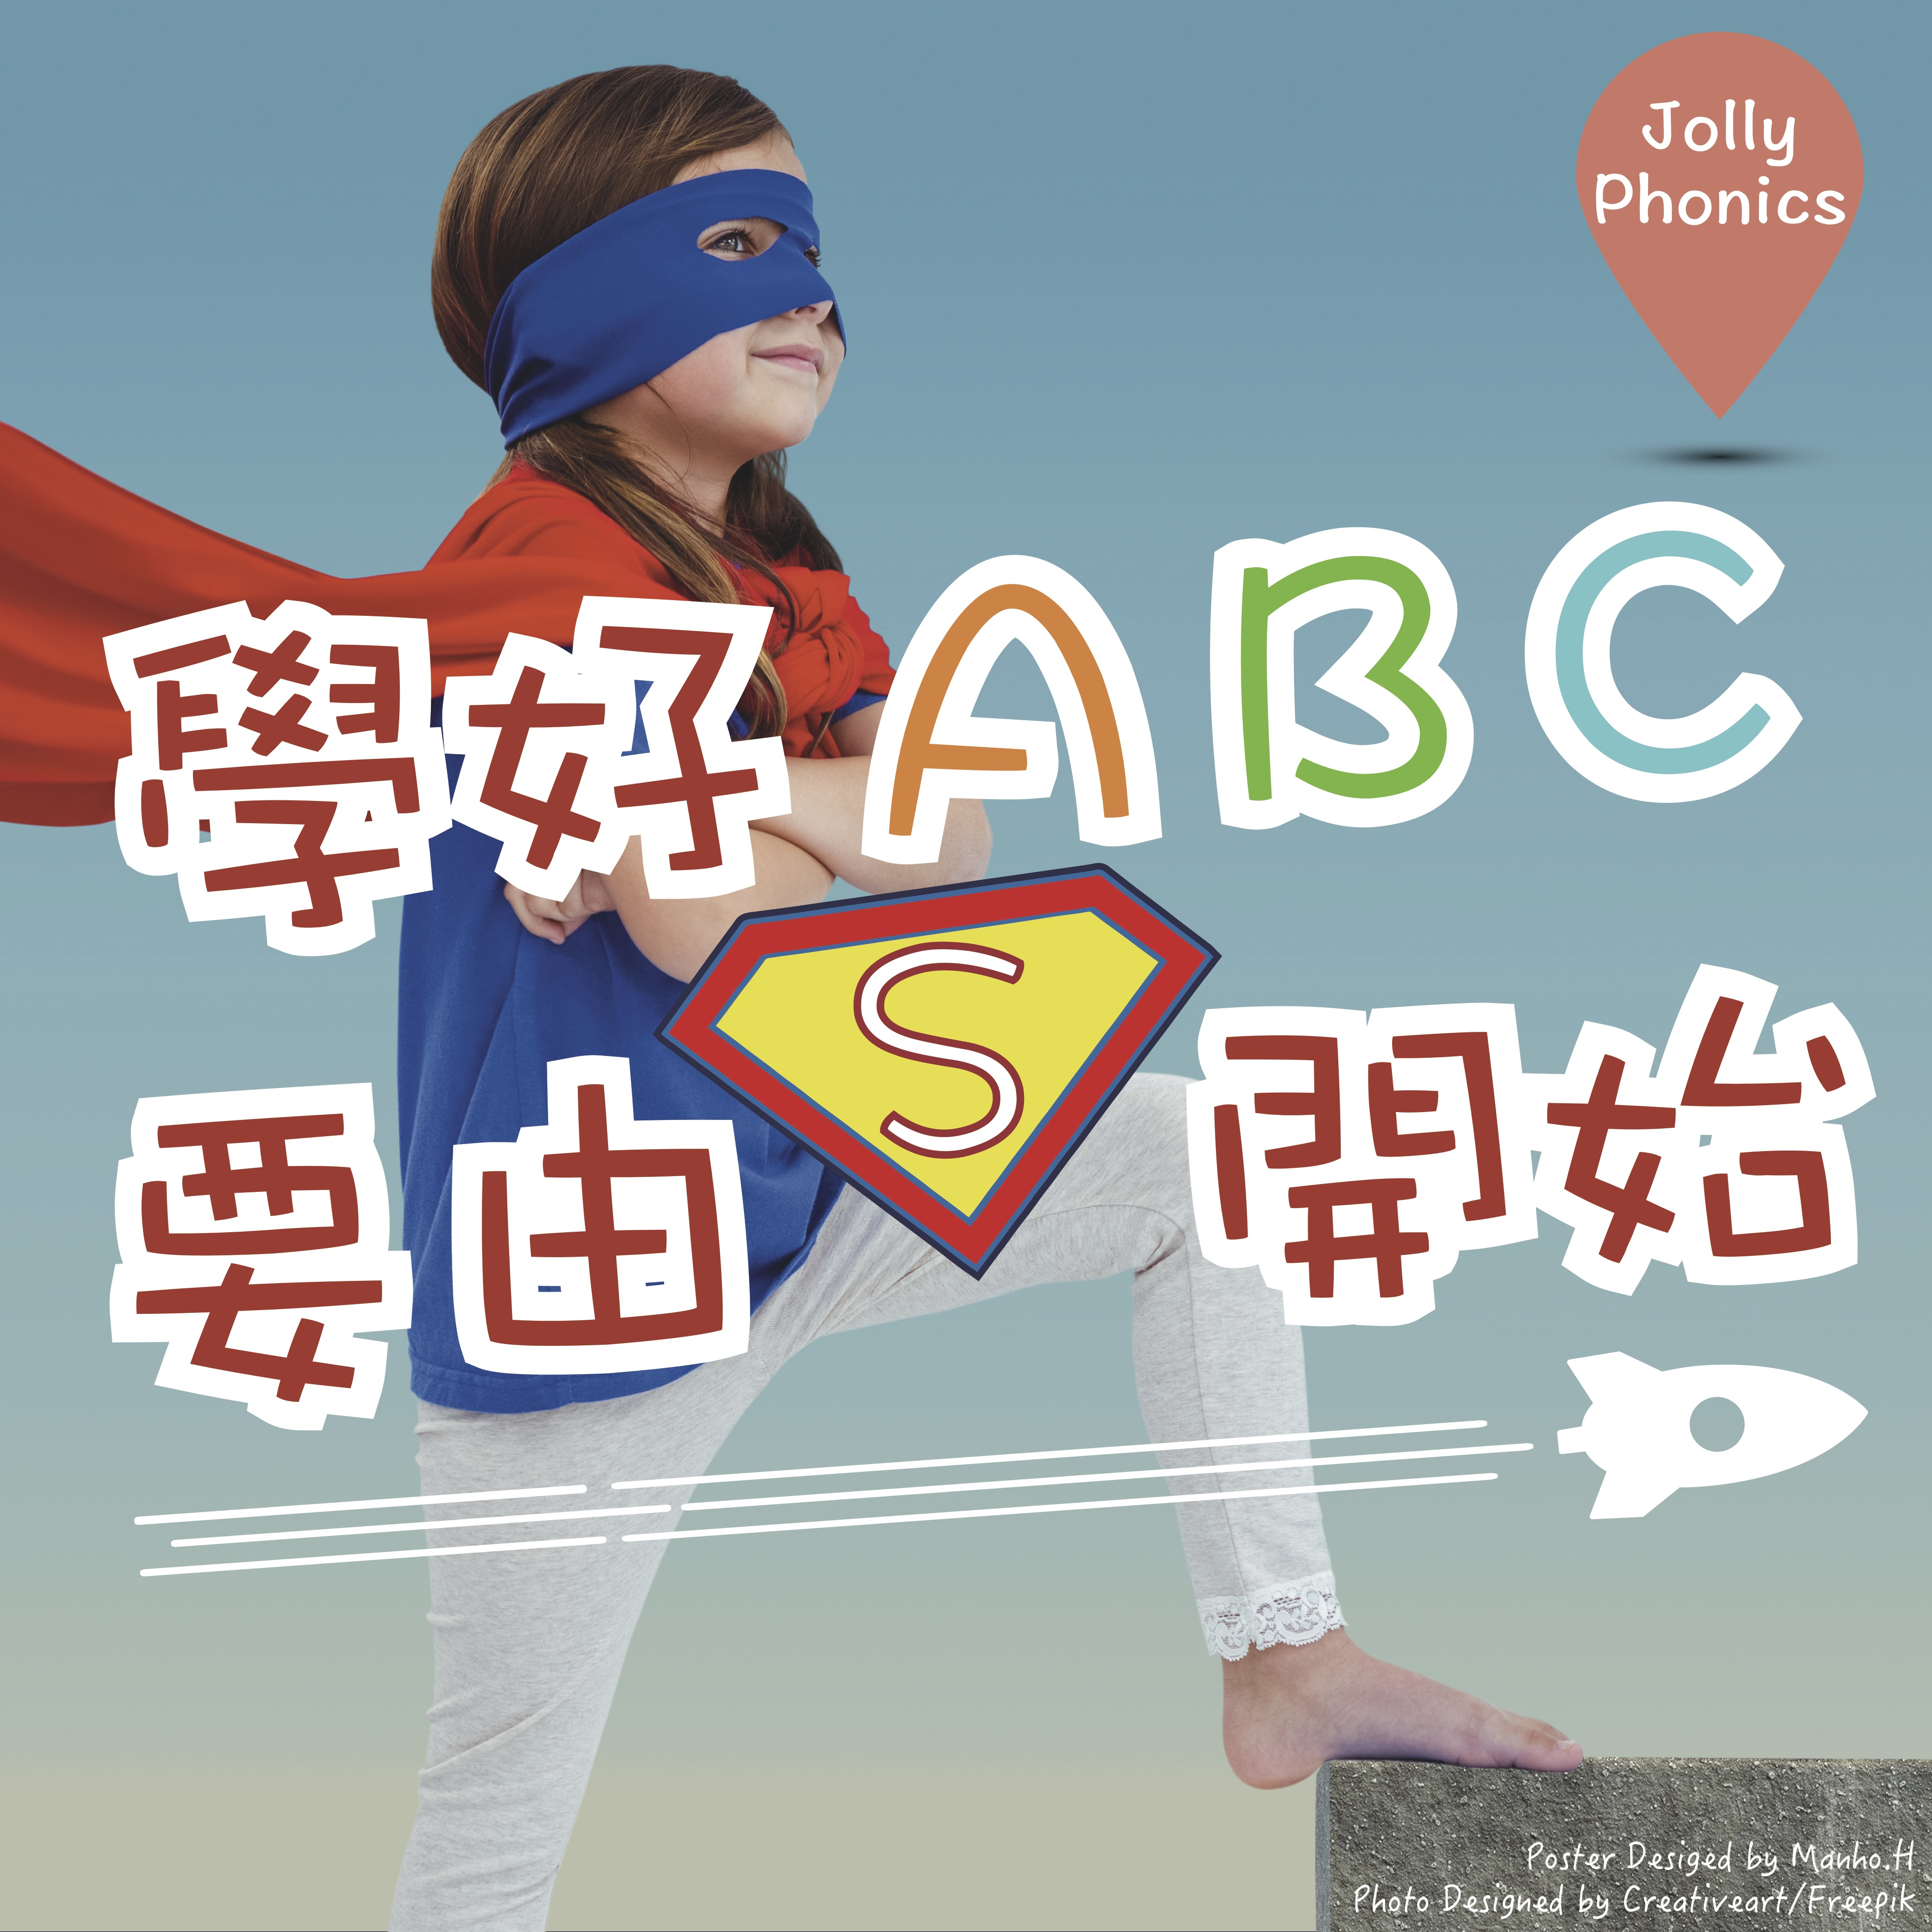 phonics website button-supergirl